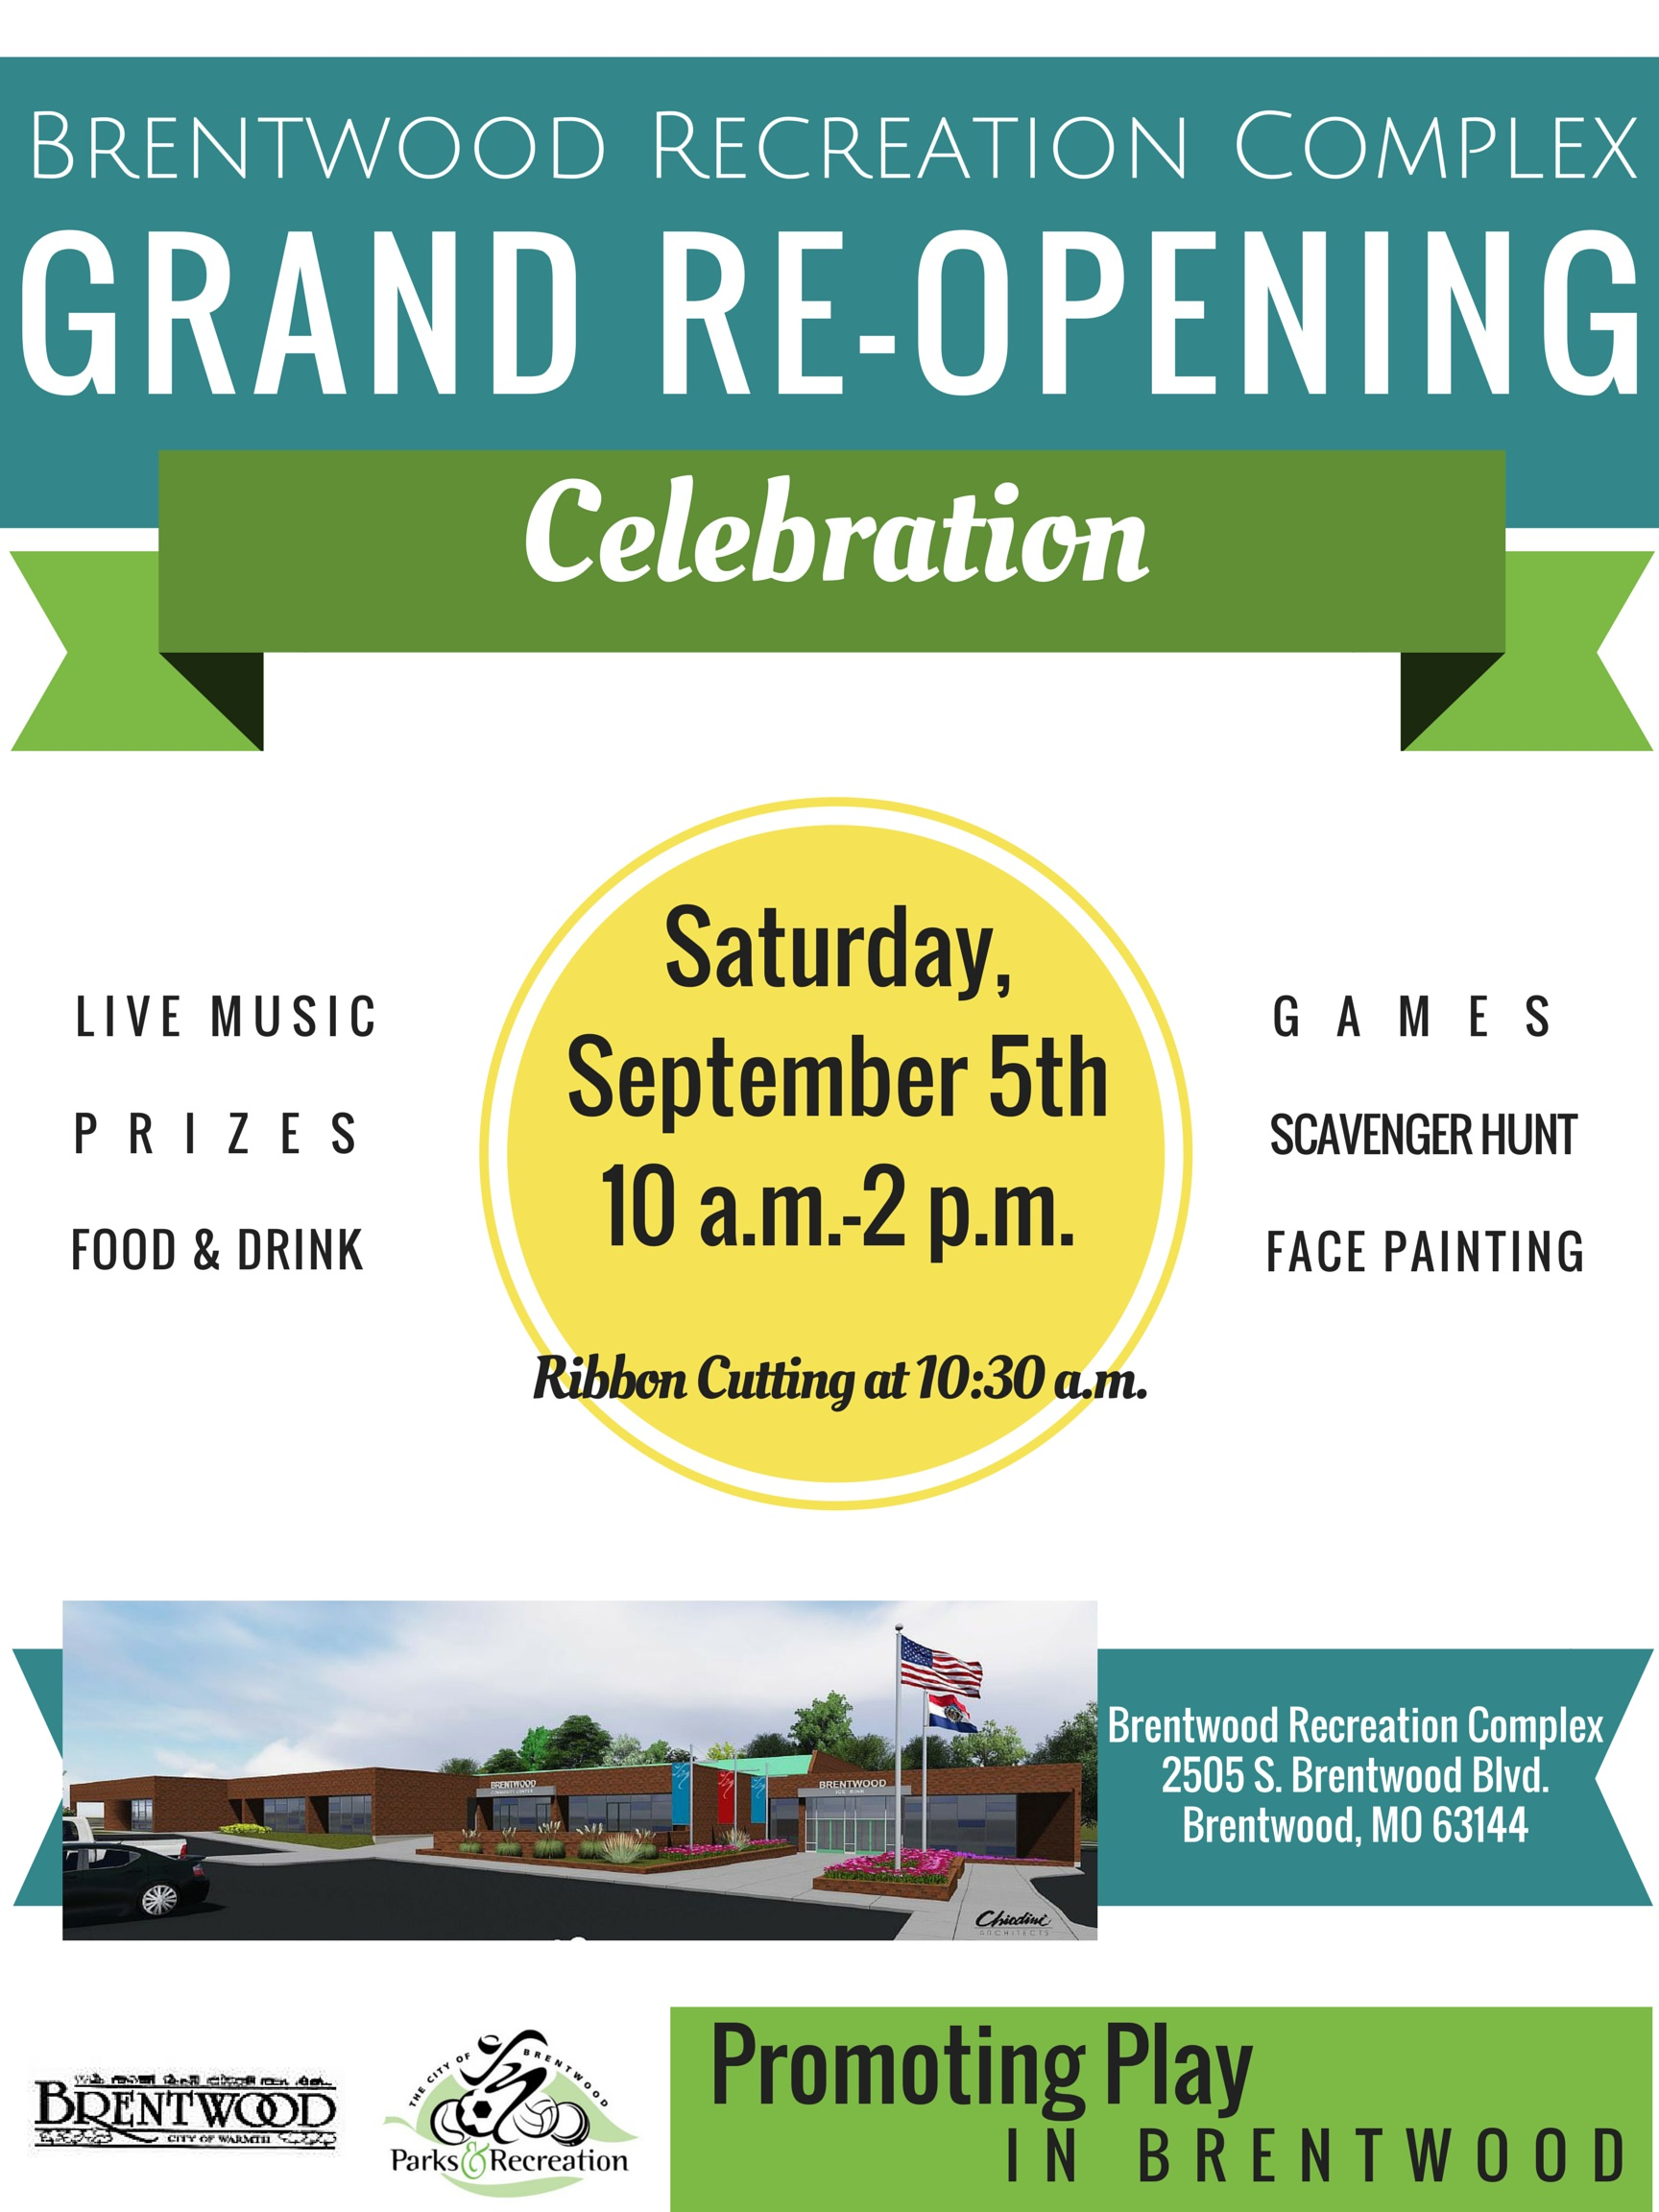 Grand Re-Opening Celebration